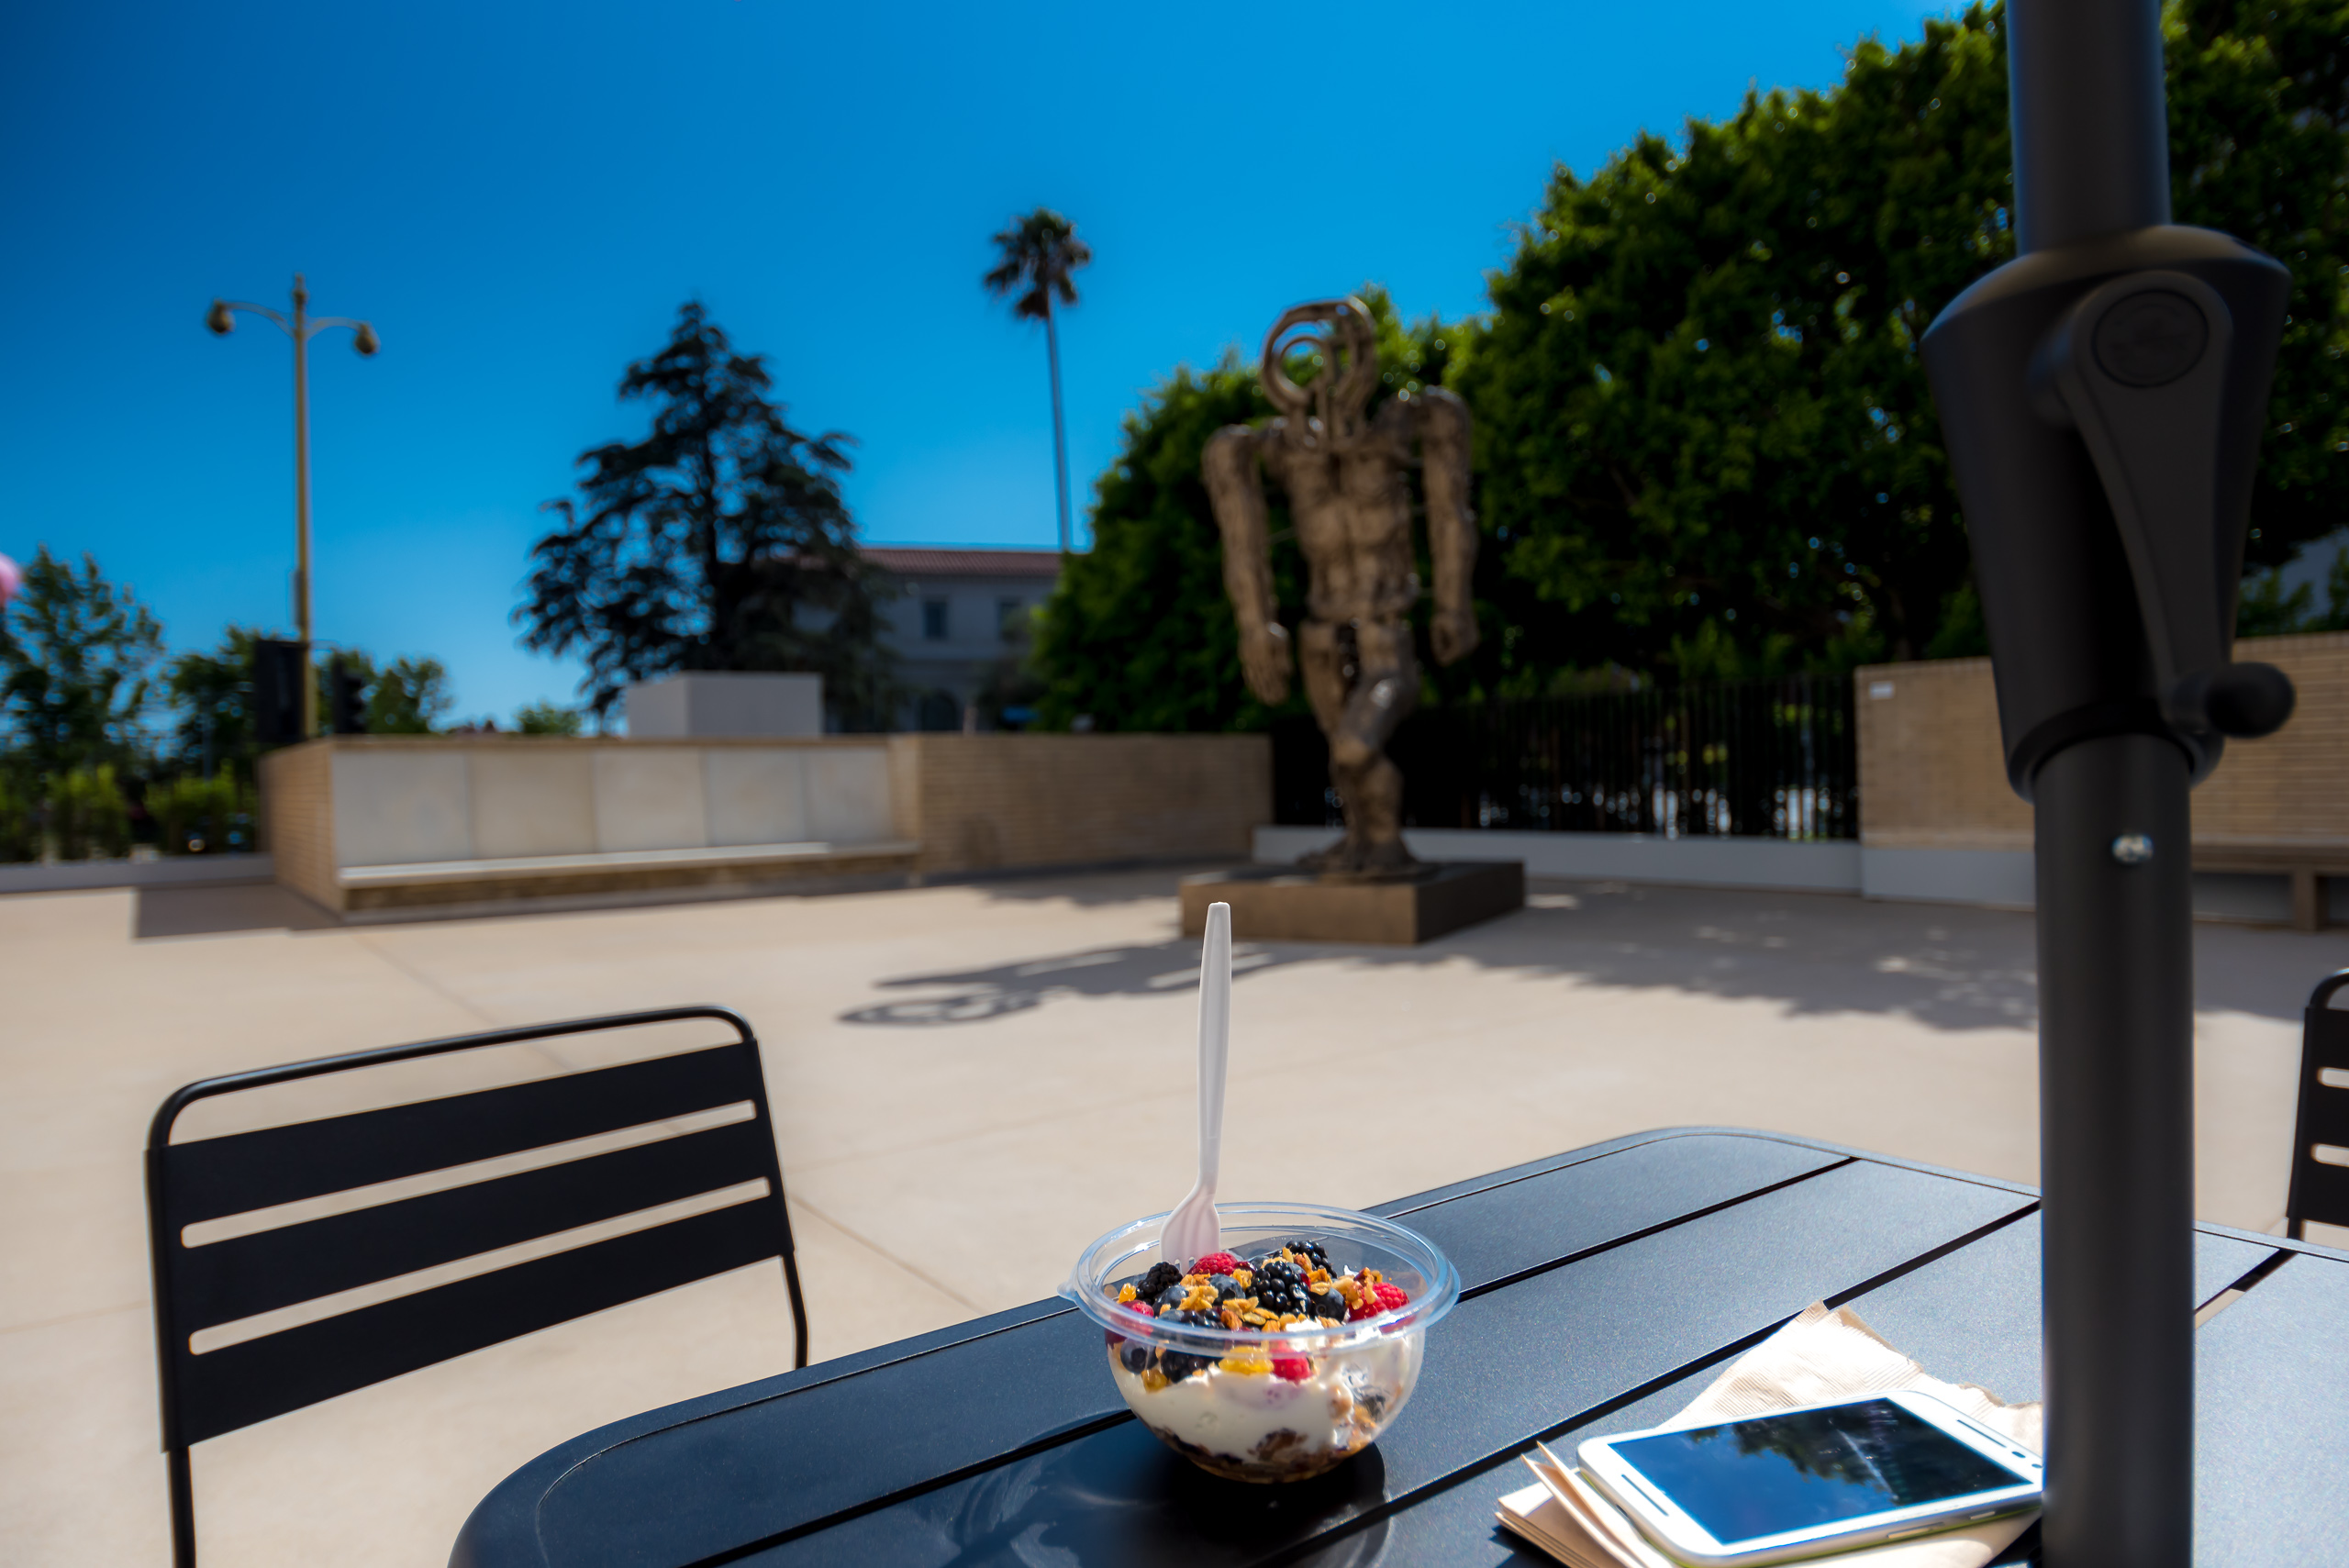 A yogurt and fruit bowl on a patio table in the courtyard of the Marciano Art Foundation on Wilshire Blvd in Los Angeles